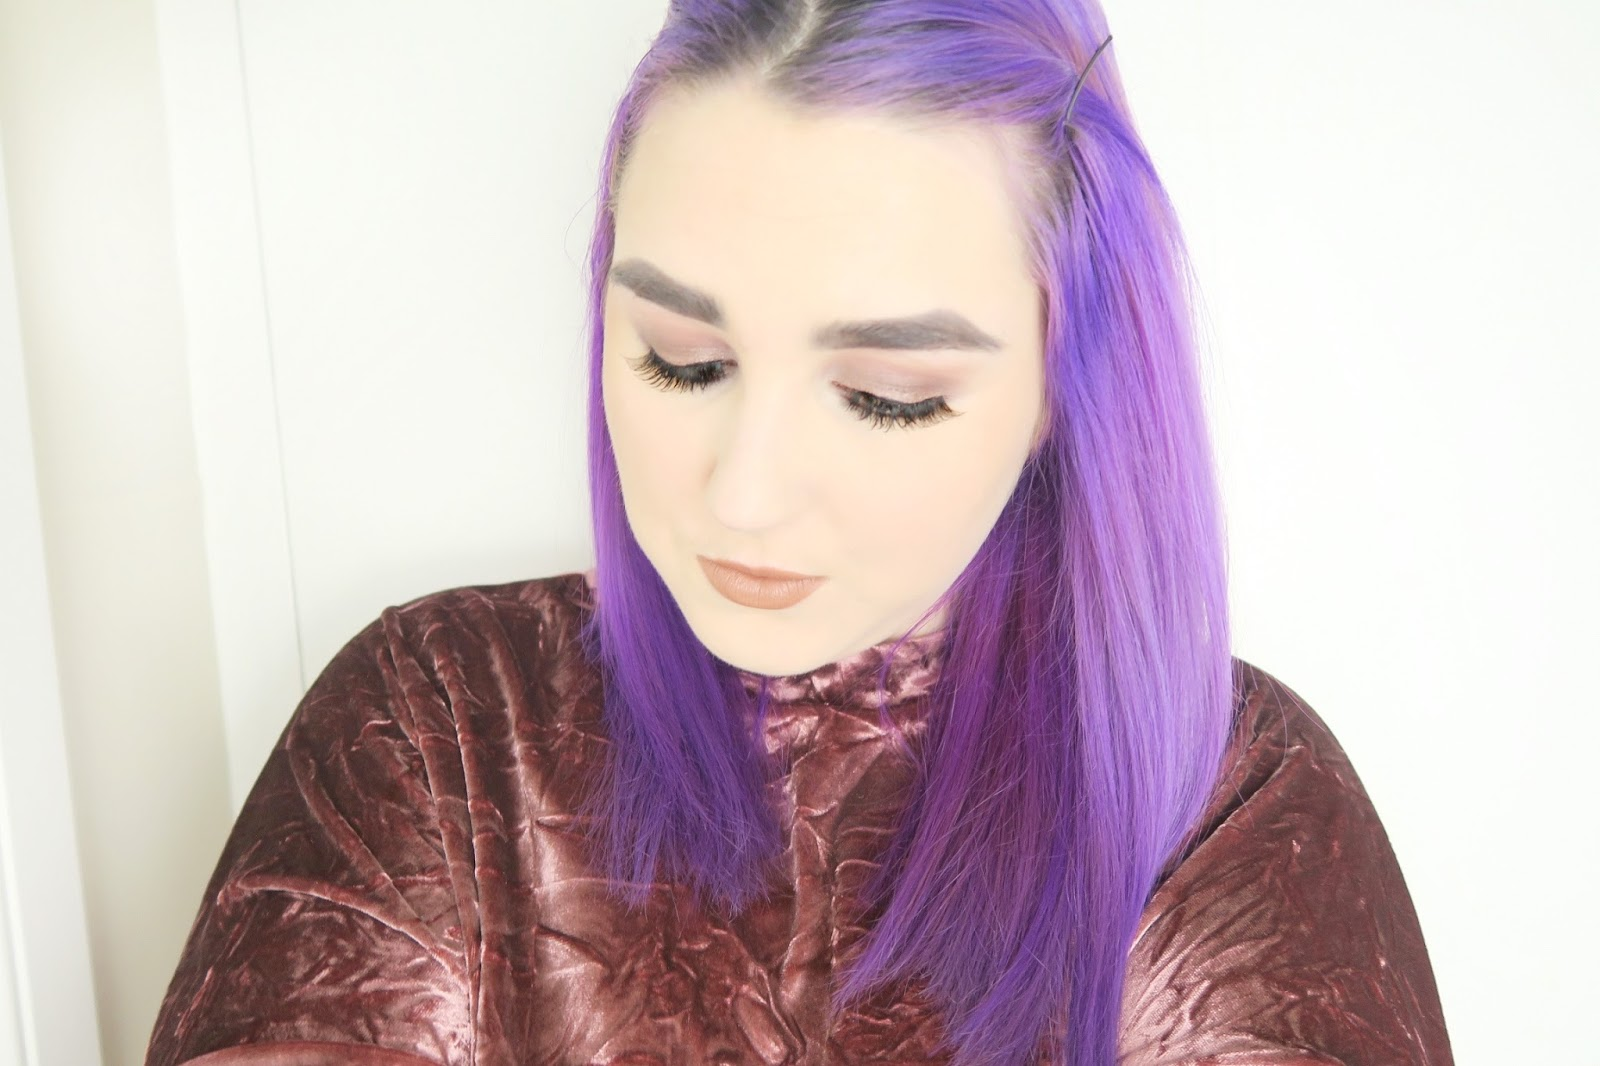 an image of a new year's eve make-up look using rimmel